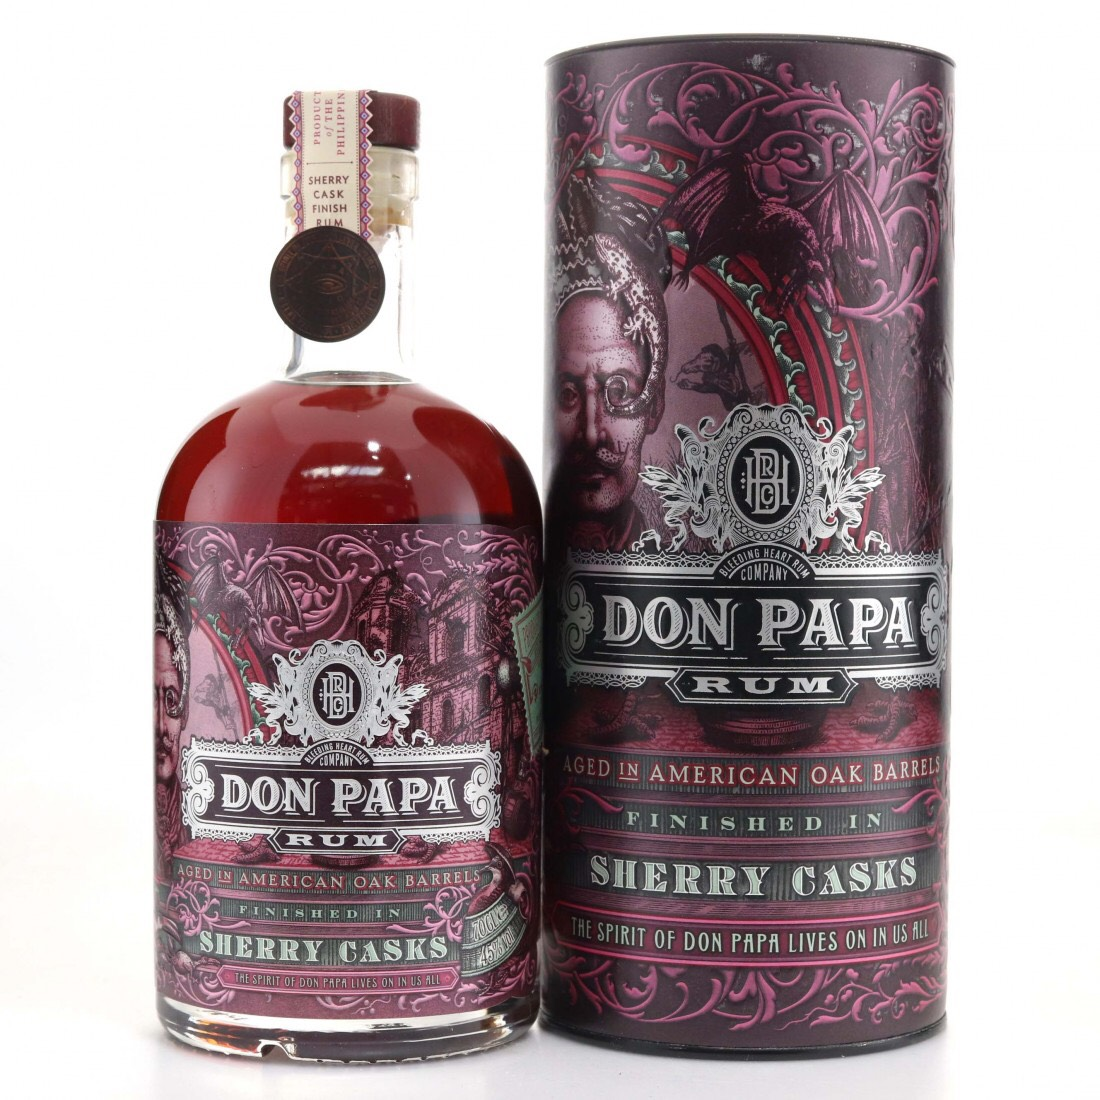 Bottle image of Don Papa Sherry Cask